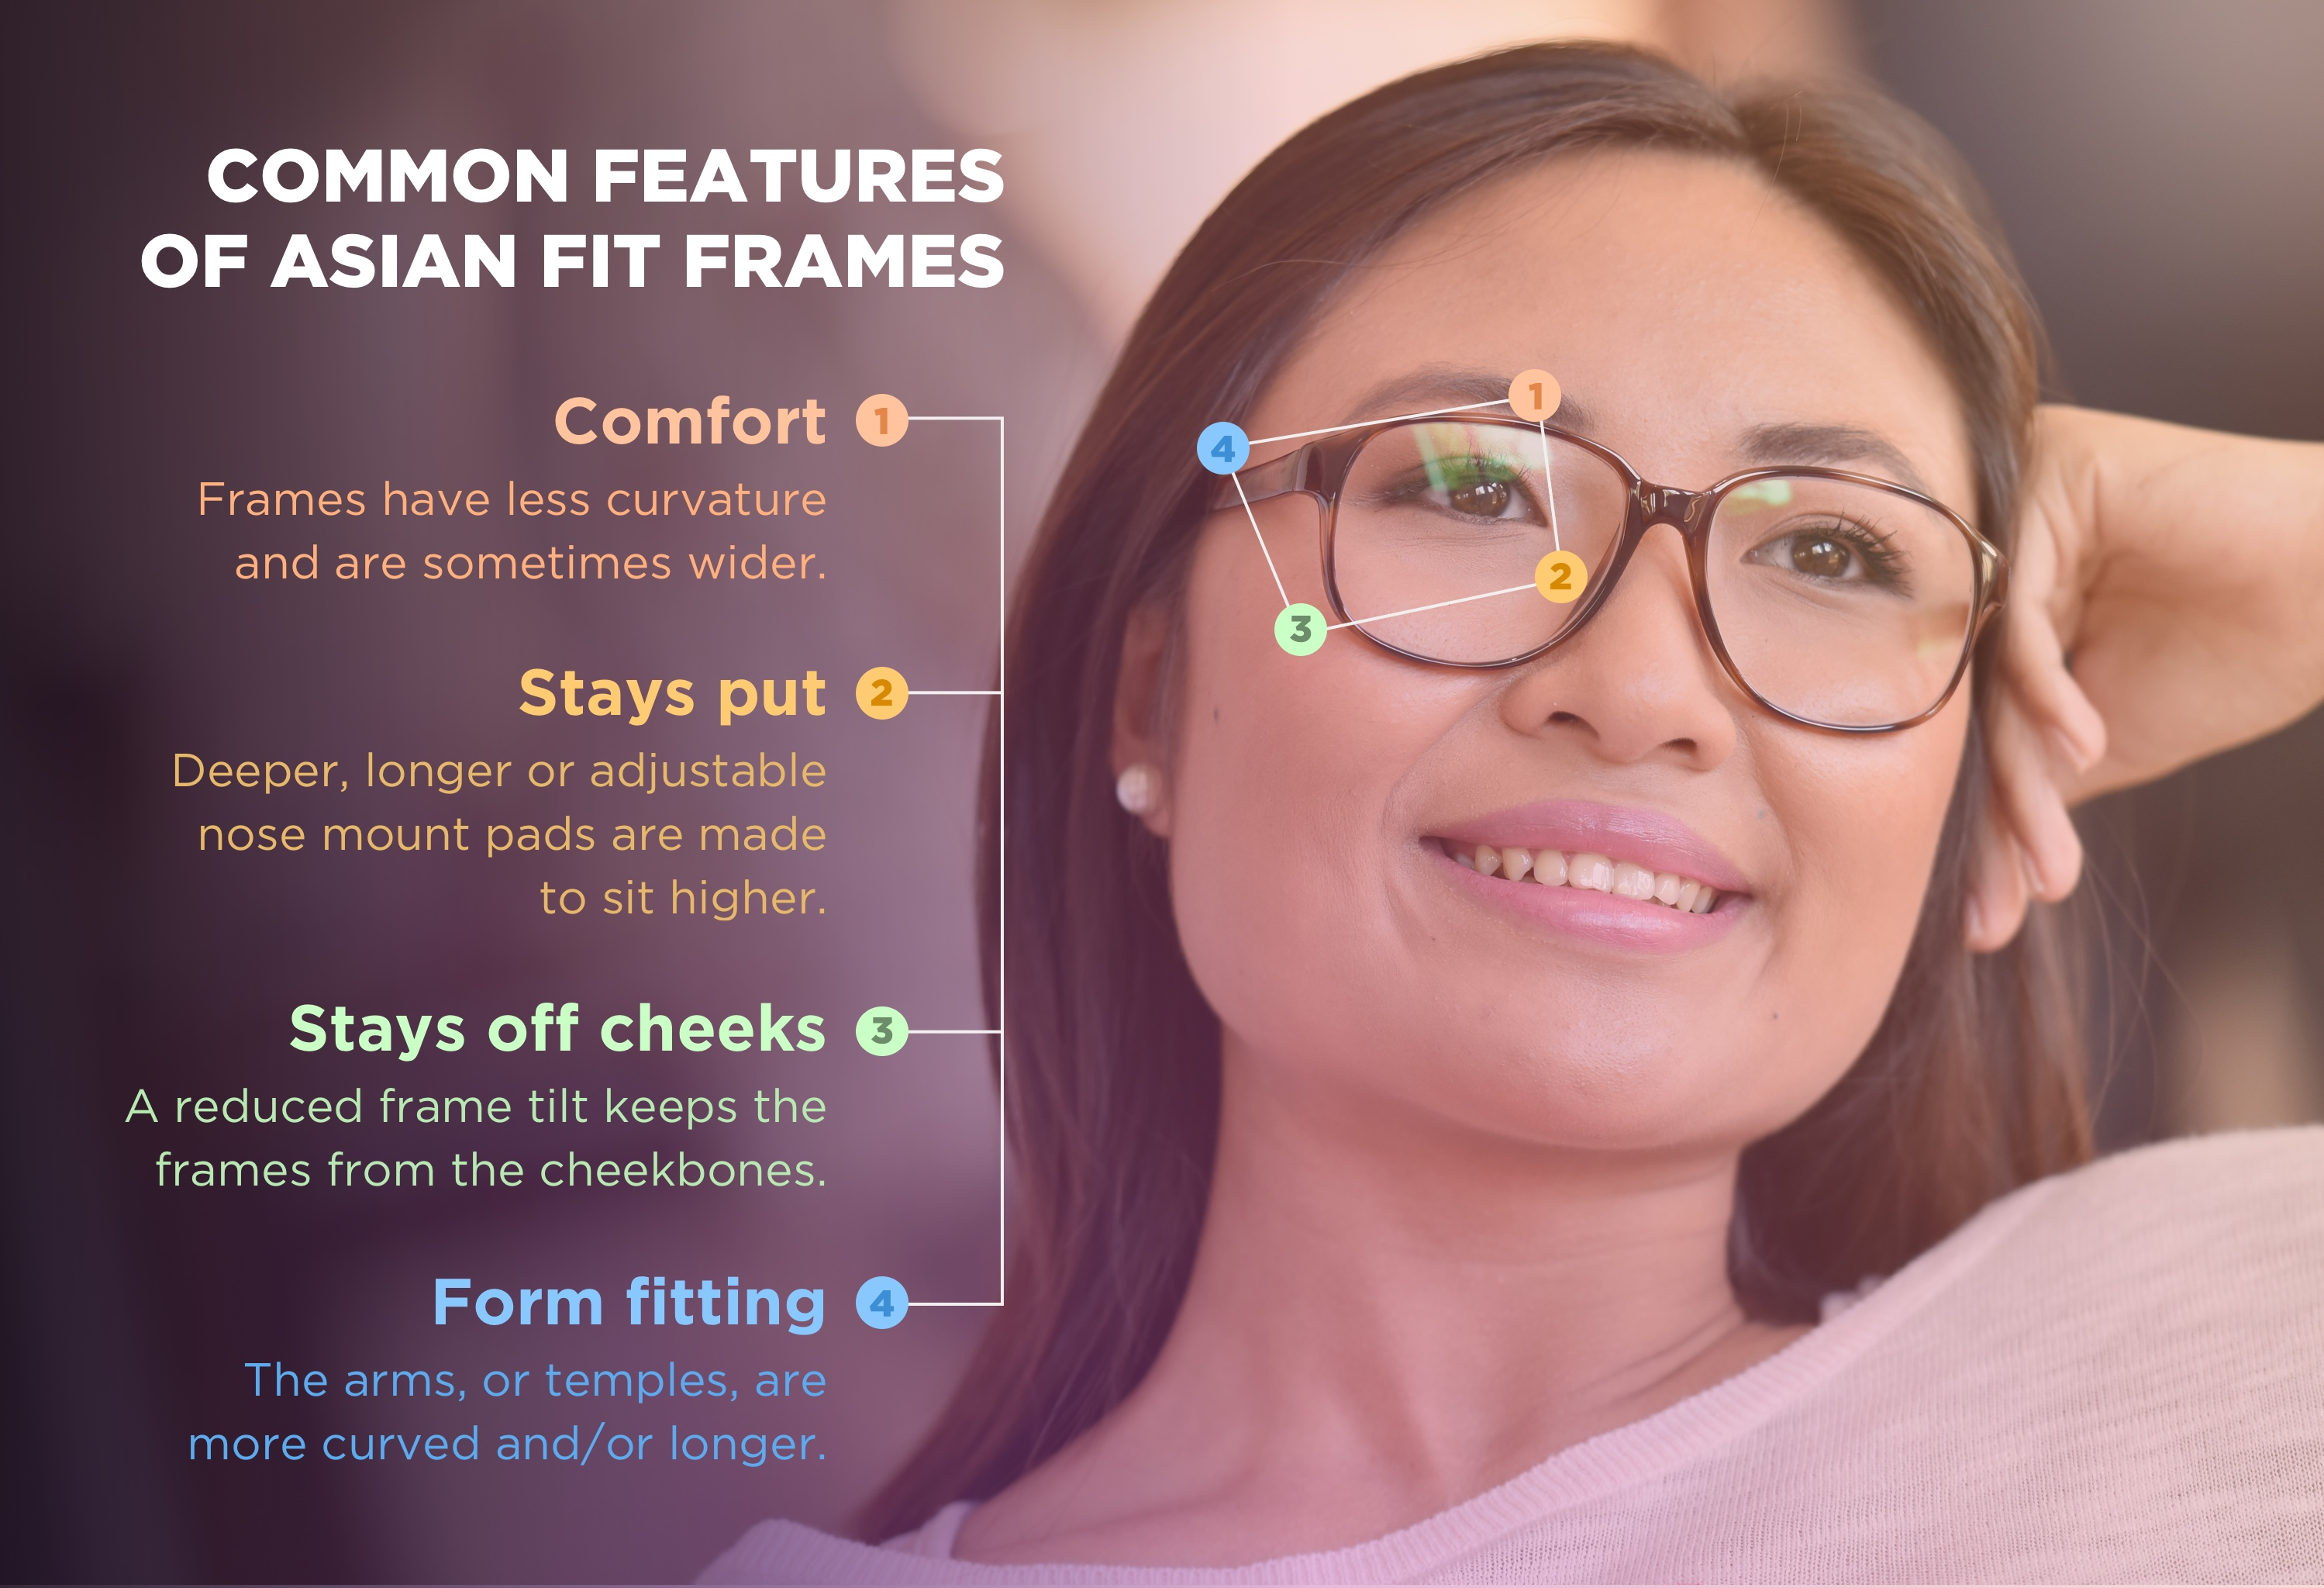 Asian fit common features